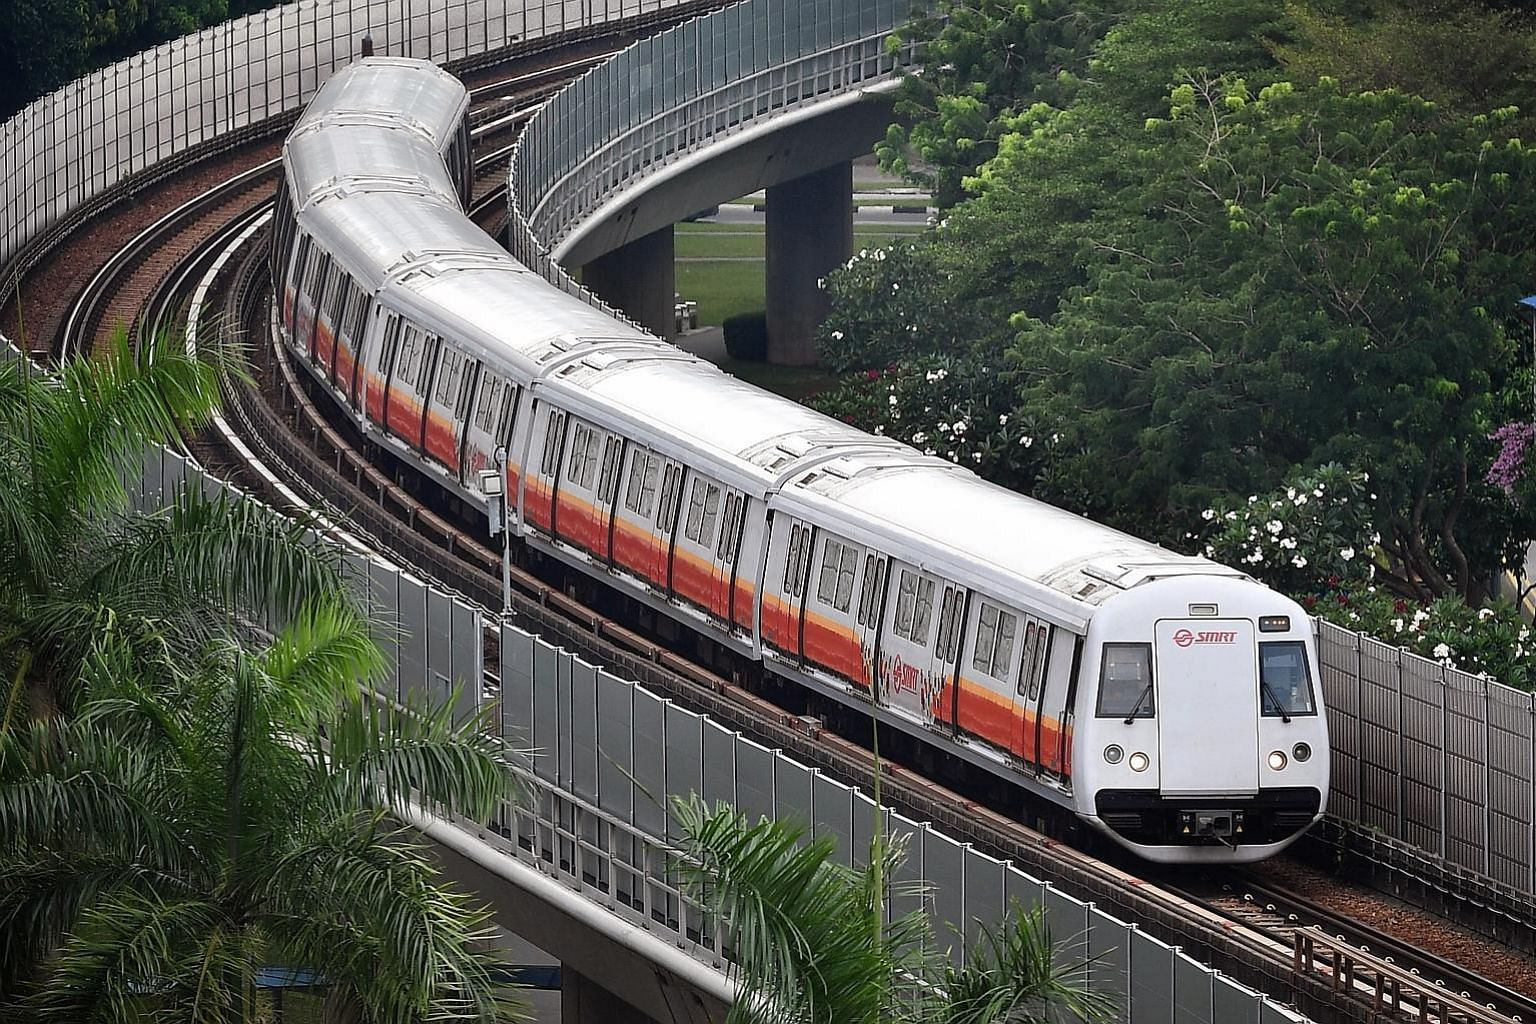 The proportion of SMRT's spending on maintenance has been increasing steadily over the past four years, with the firm spending $425 million on rail maintenance-related costs in the last financial year.